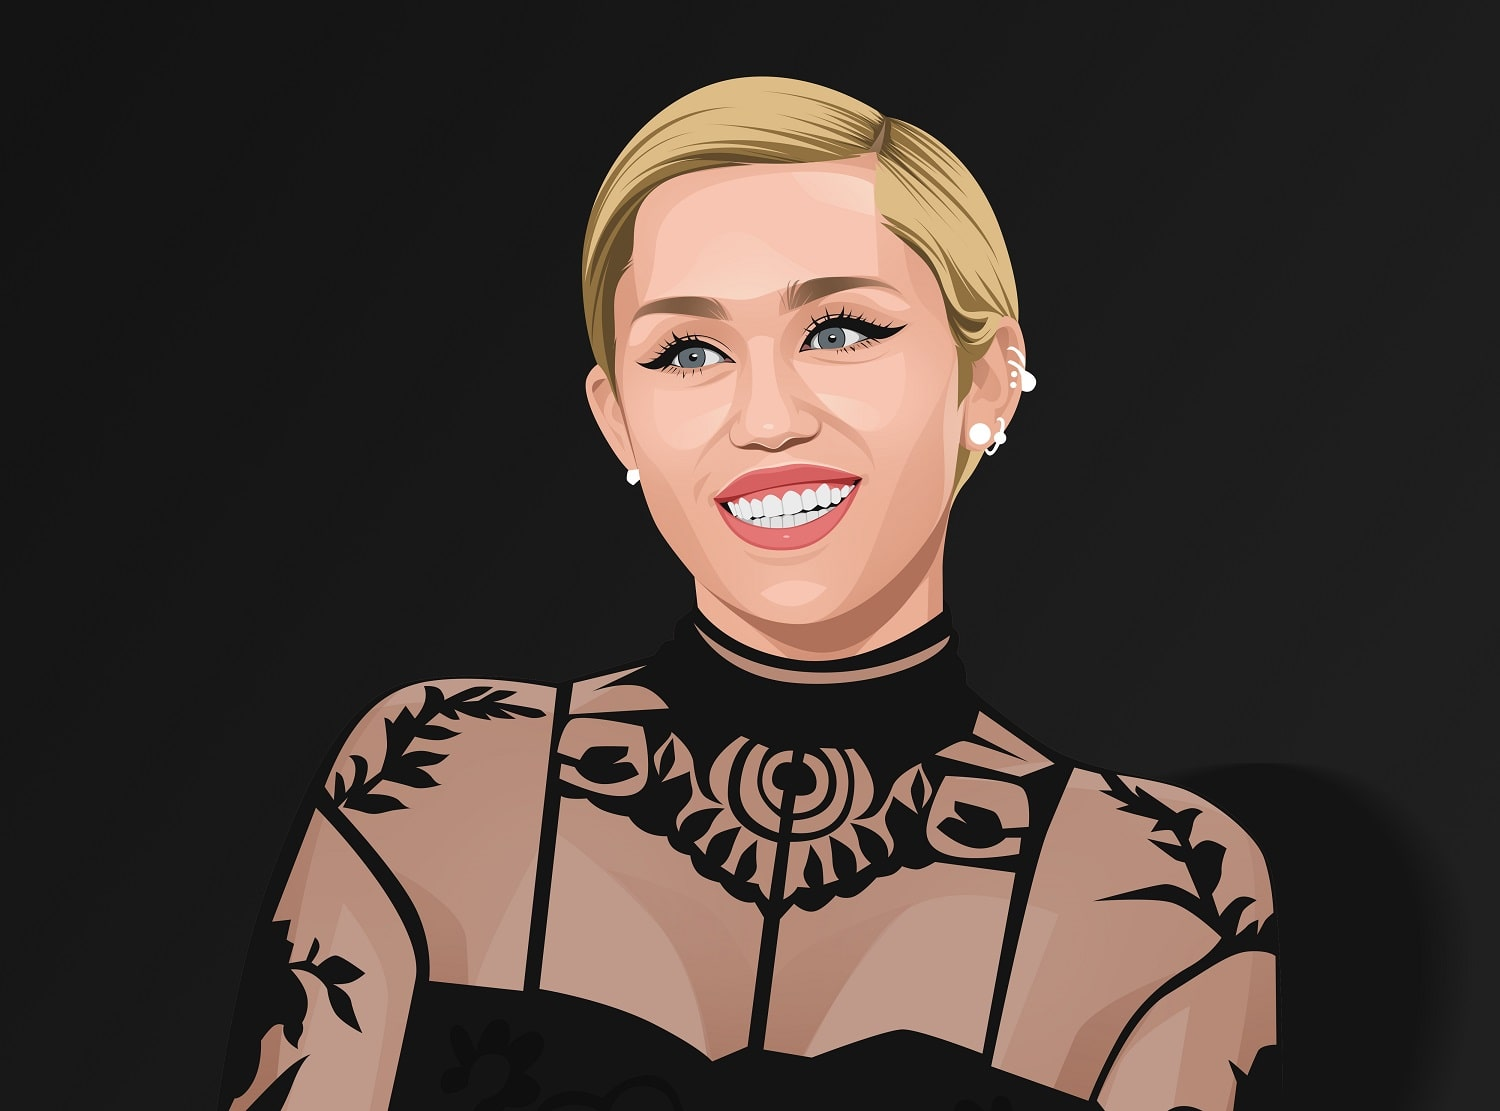 Miley Cyrus Copyright by Inspirationfeed.